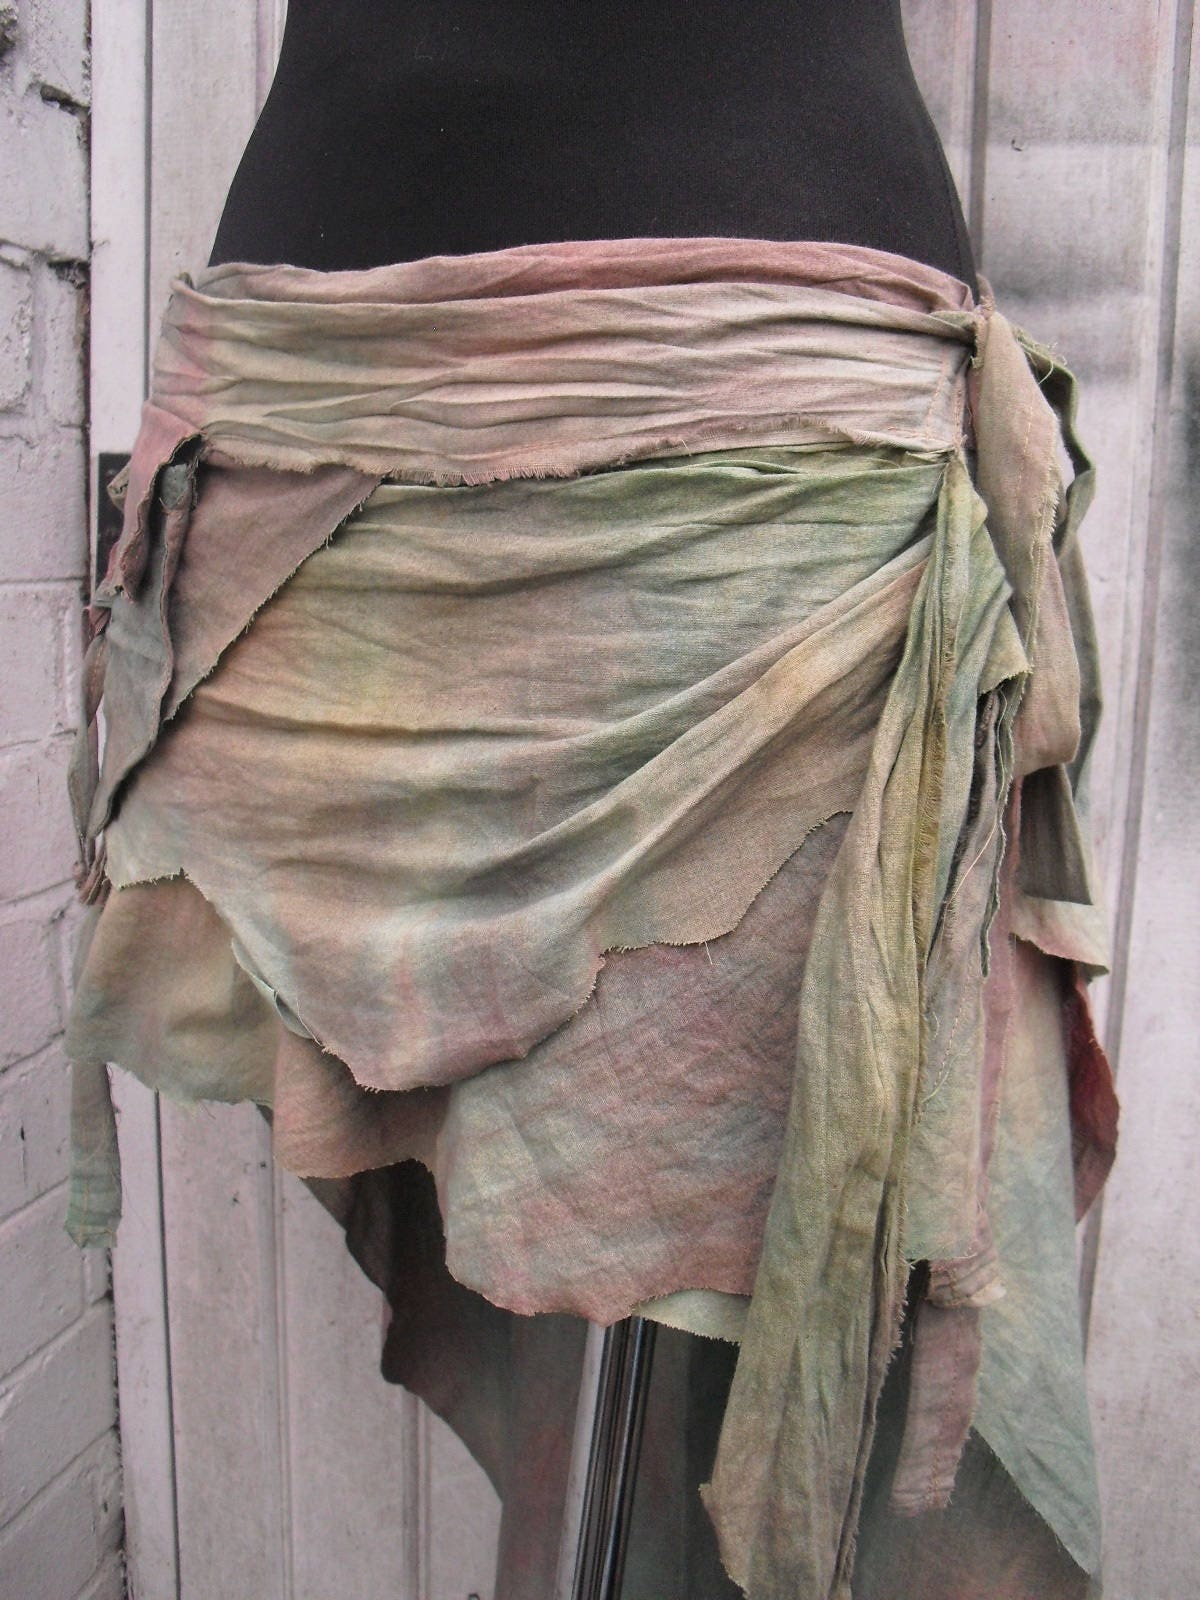 Tie dye pale green red Tattered skirt low high Nymphs Pixie skirt Fairy Woodland cotton skirt OOAK one size 74100cm